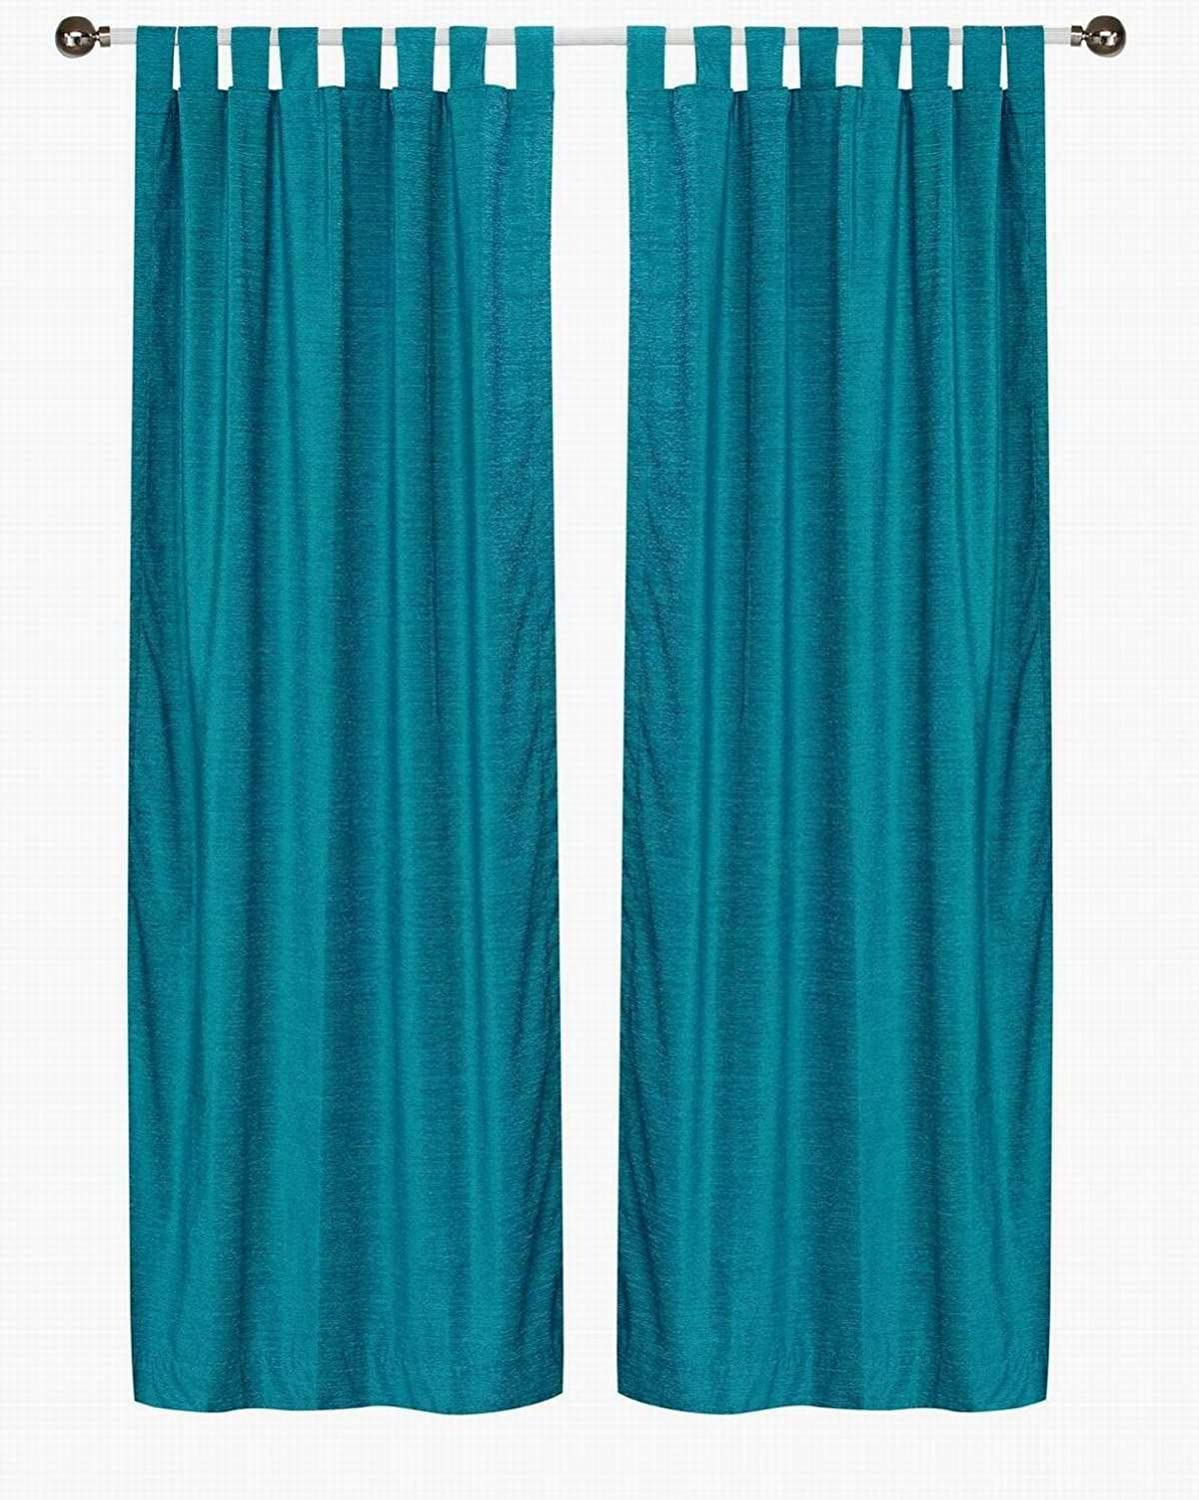 Indian Selections Turquoise Tab Top Velvet Cafe Curtain/Drape/Panel - 43W x 24L - Piece